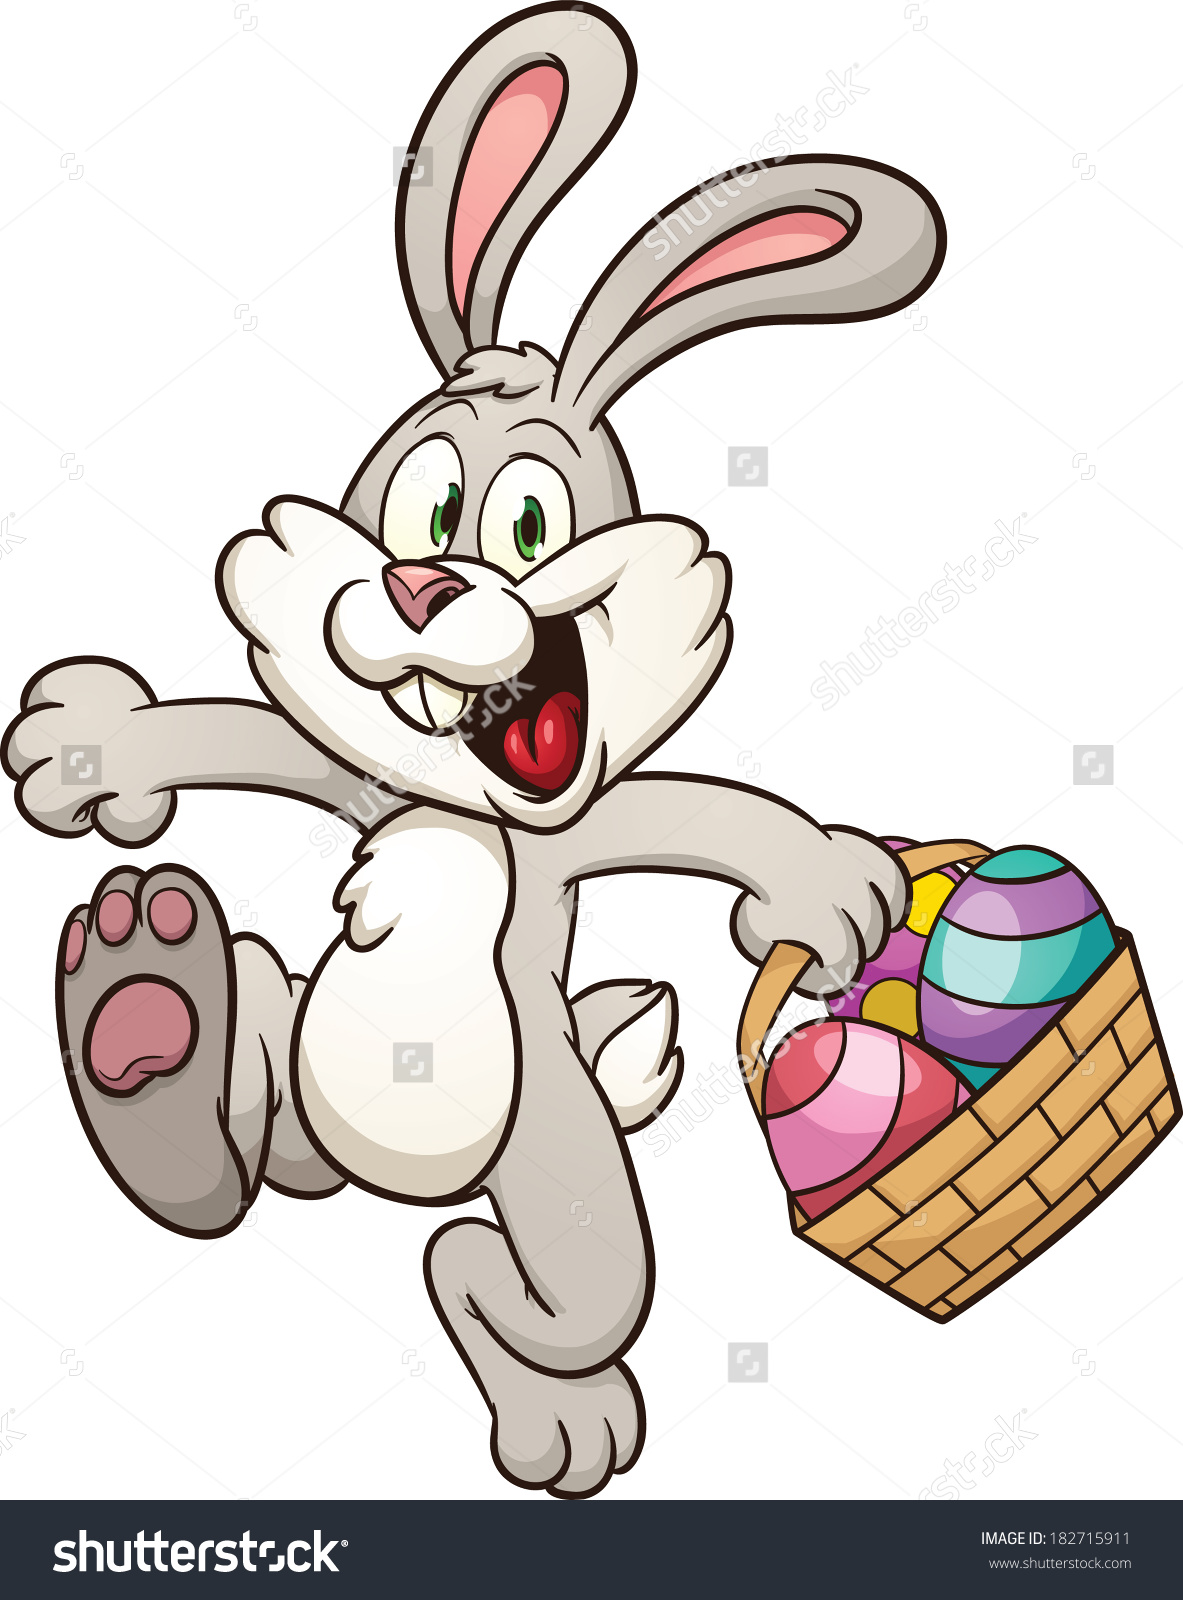 Hopping Easter Bunny Clipart ... Save to a lightbox